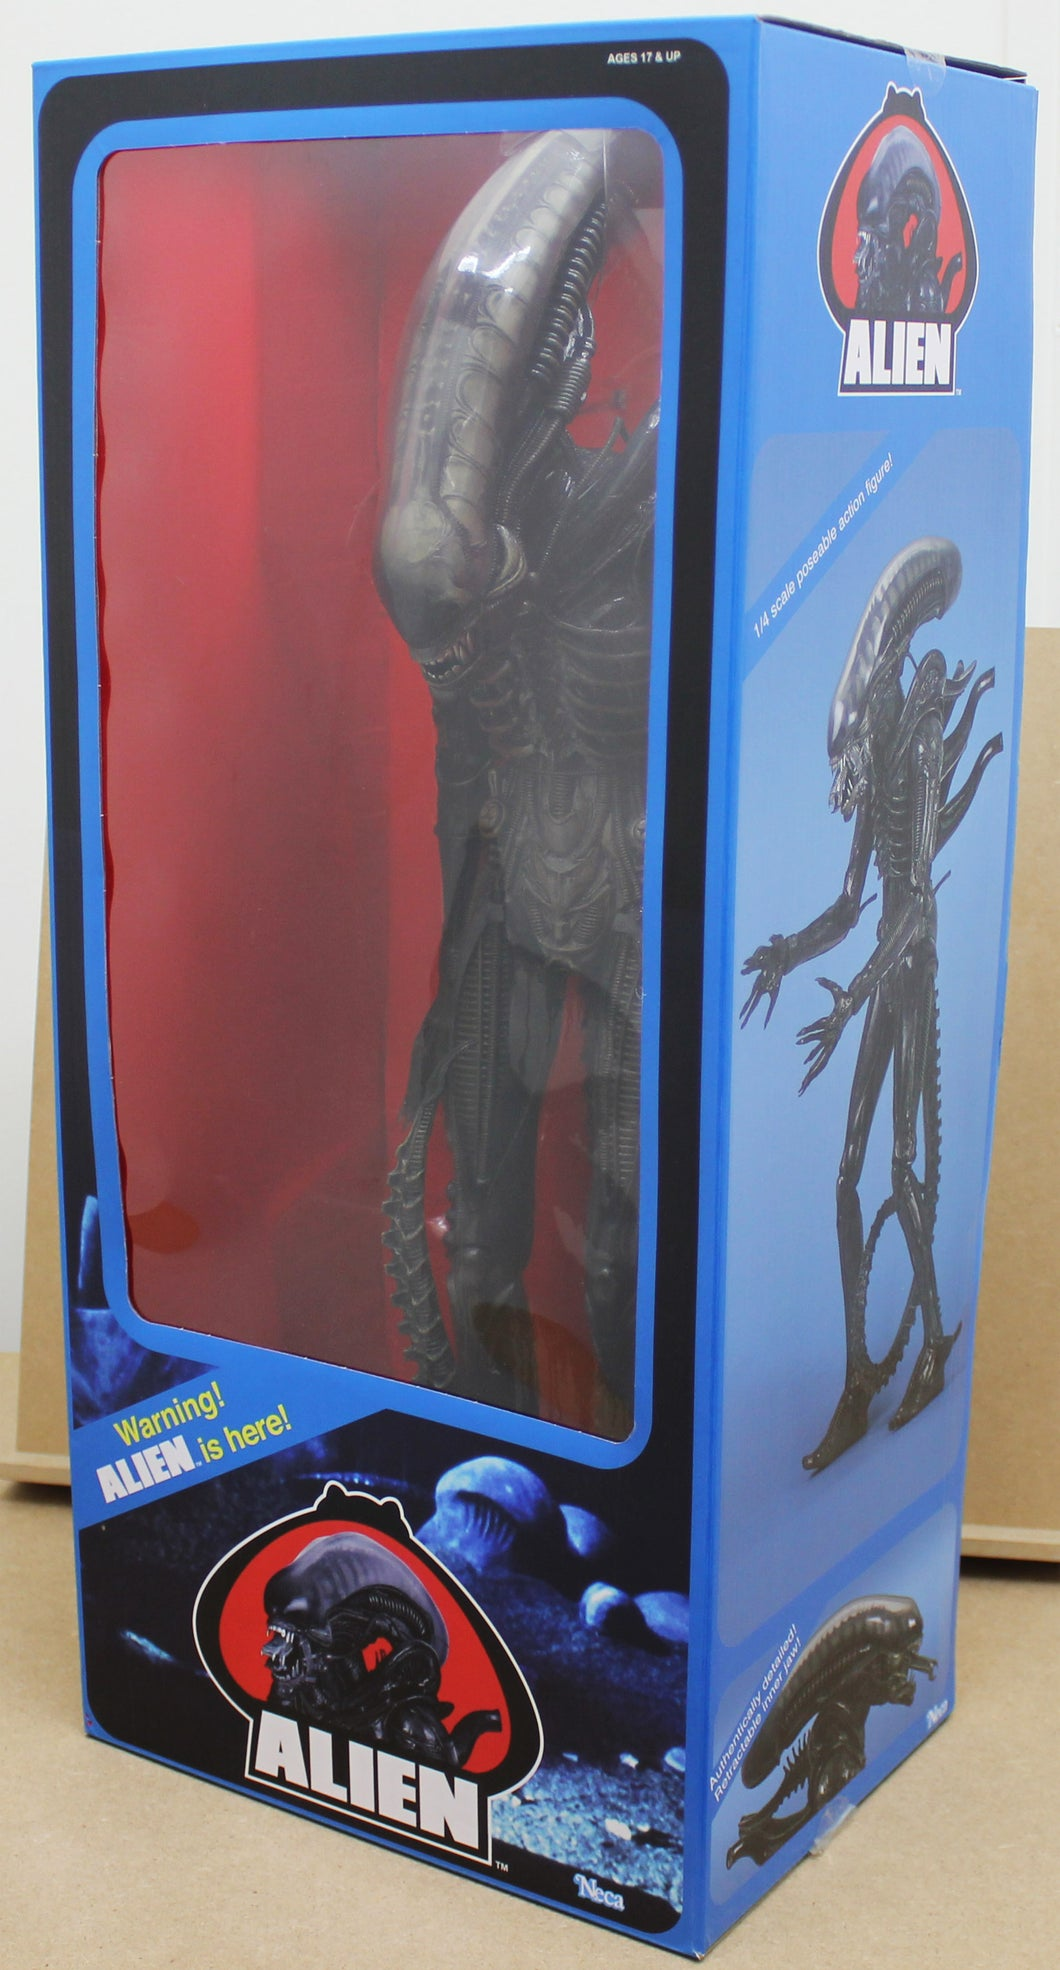 Alien Neca 1/4 Scale Action figure